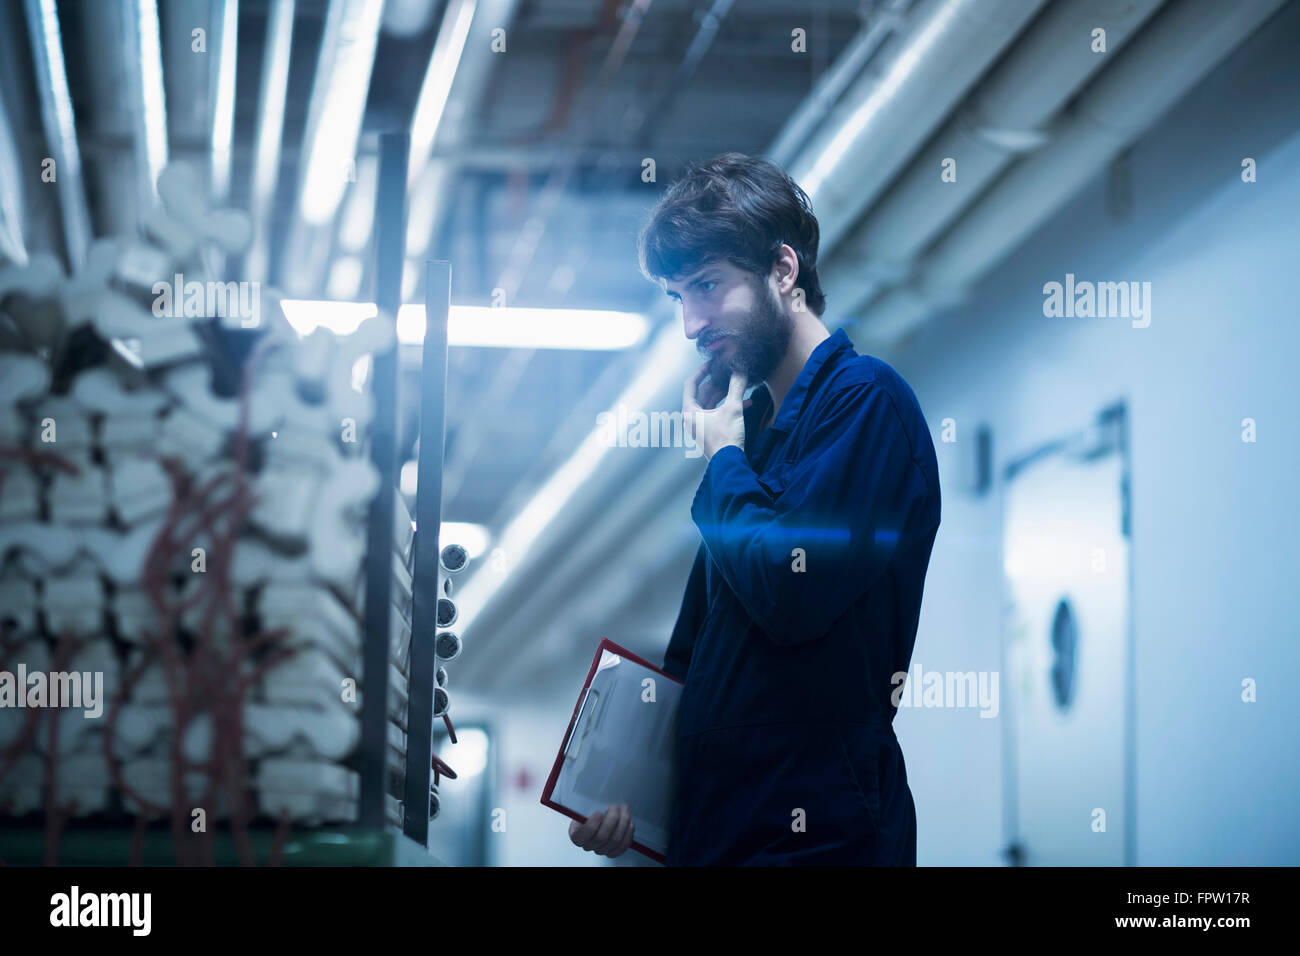 Young male engineer working in an industrial plant, Freiburg Im Breisgau, Baden-Württemberg, Germany Stock Photo